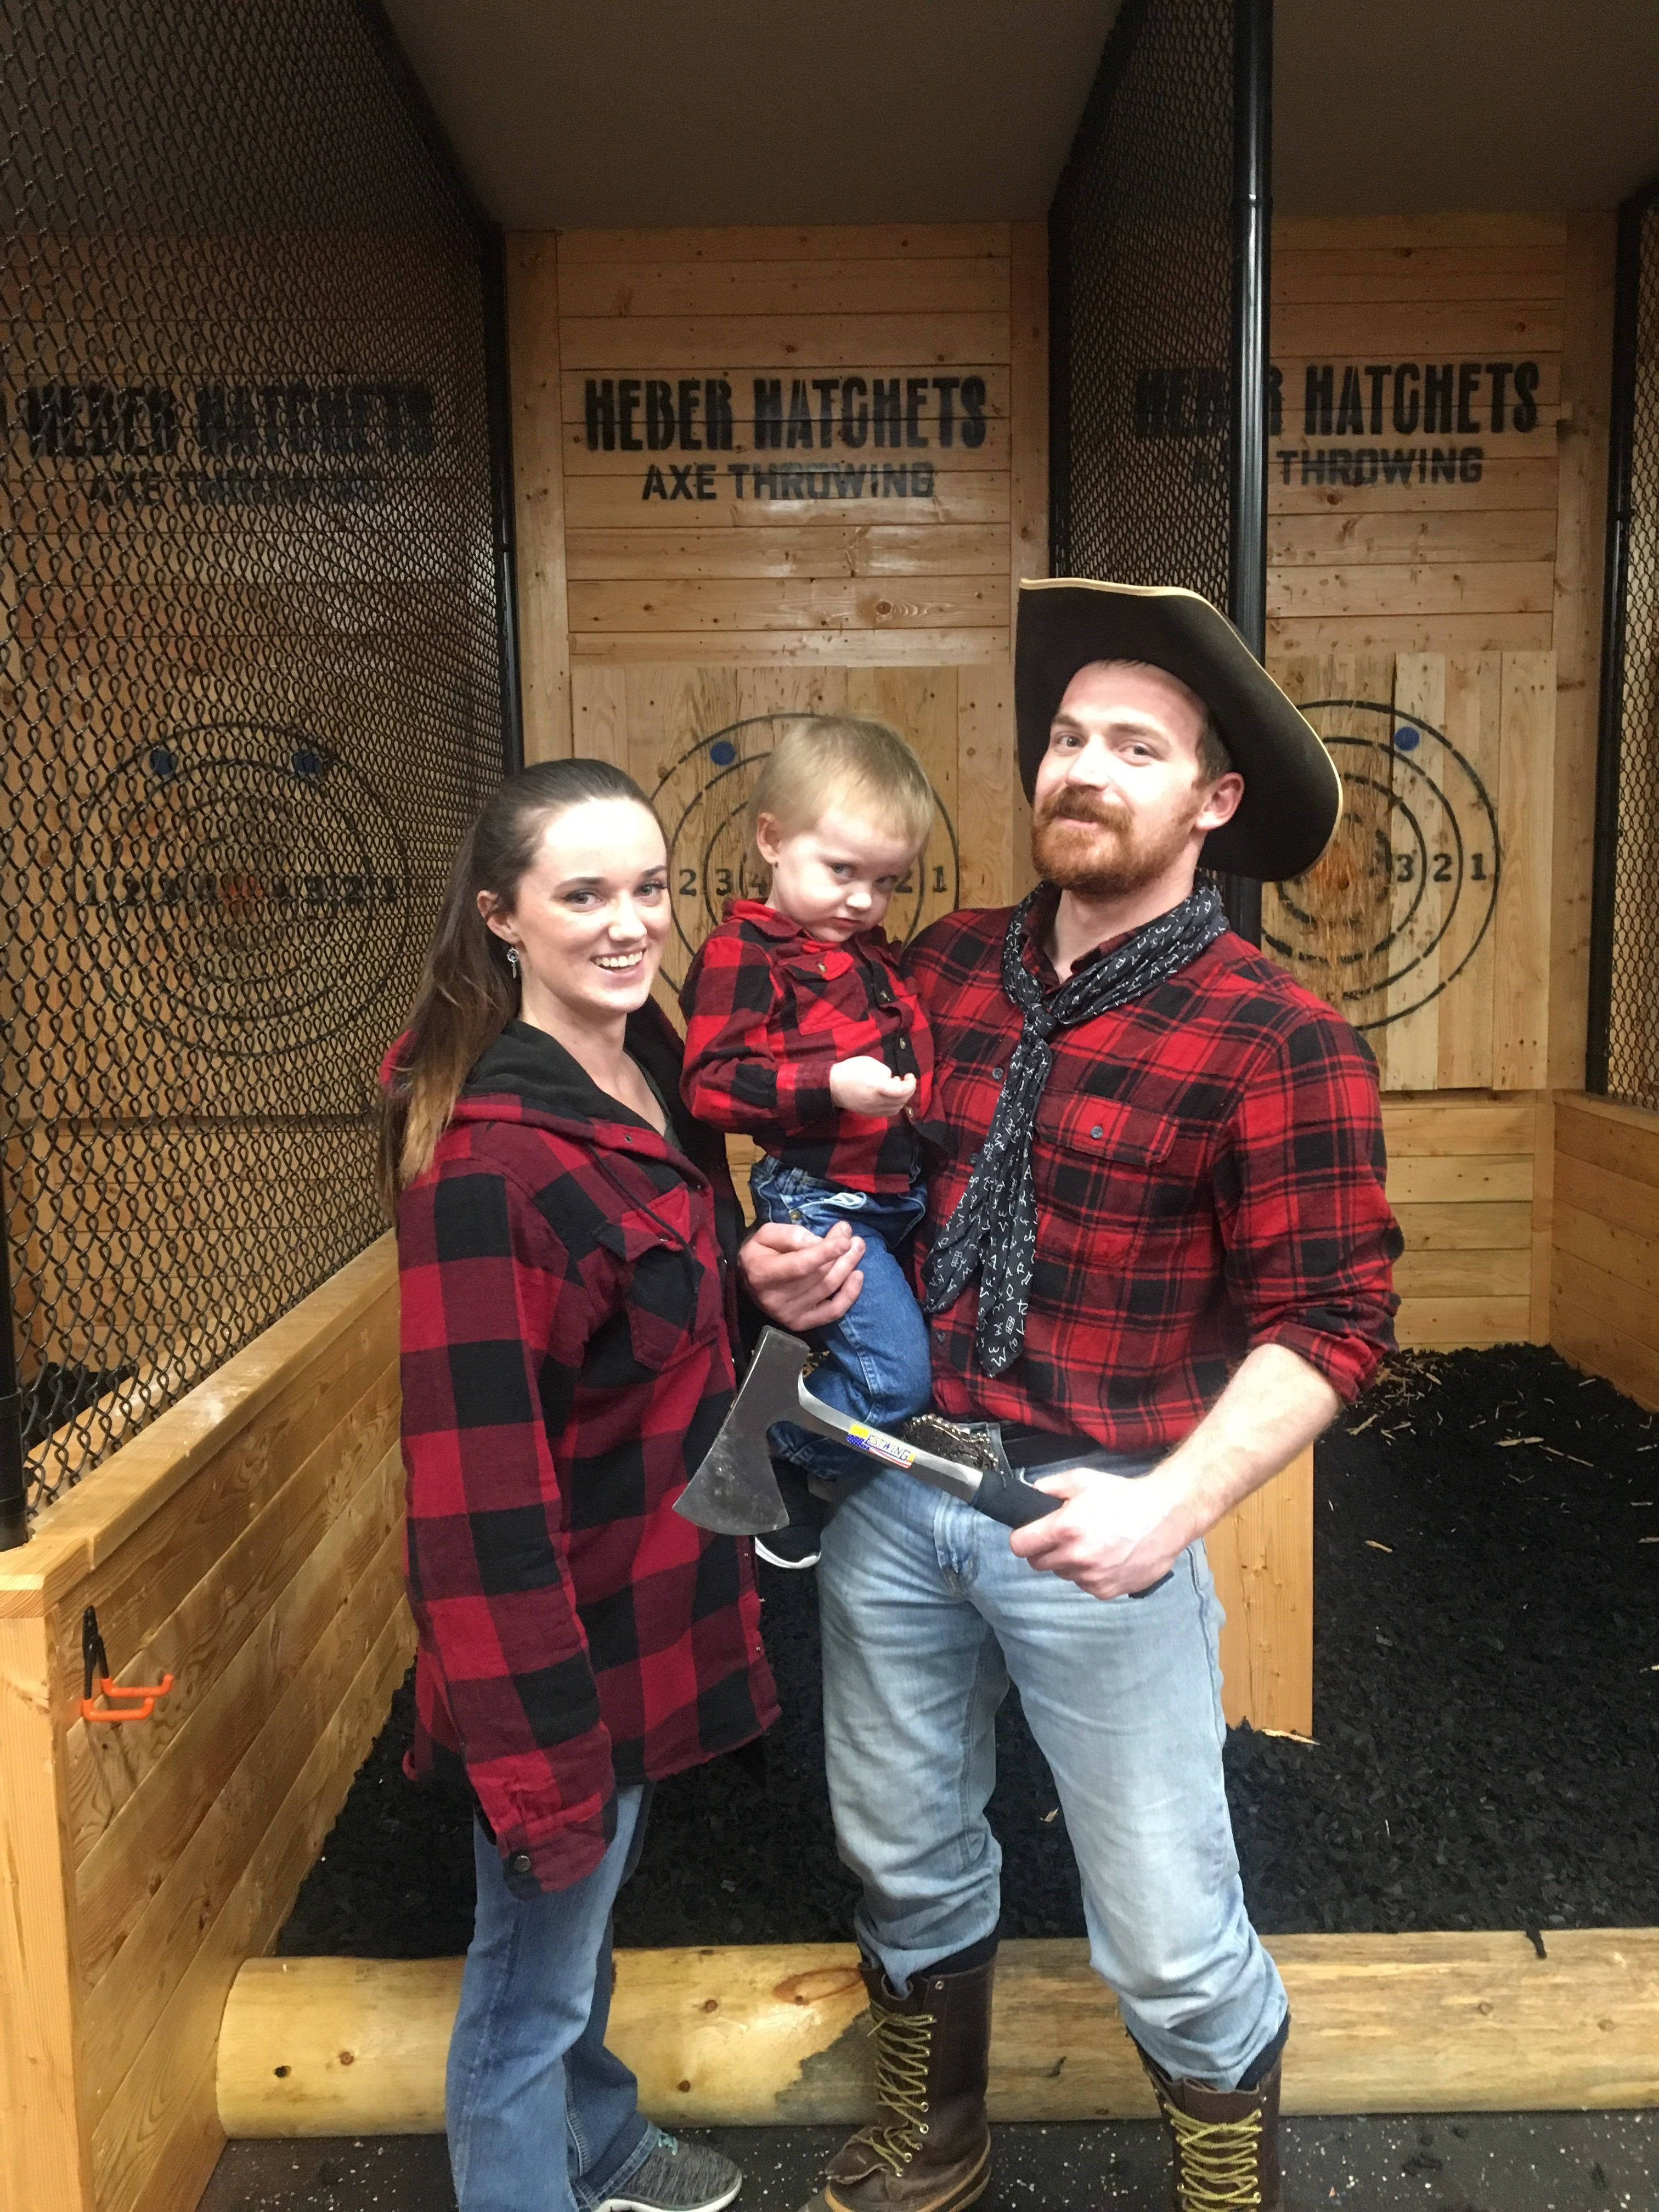 A family wearing flannel poses with an axe at Heber Hatchets in Rexburg